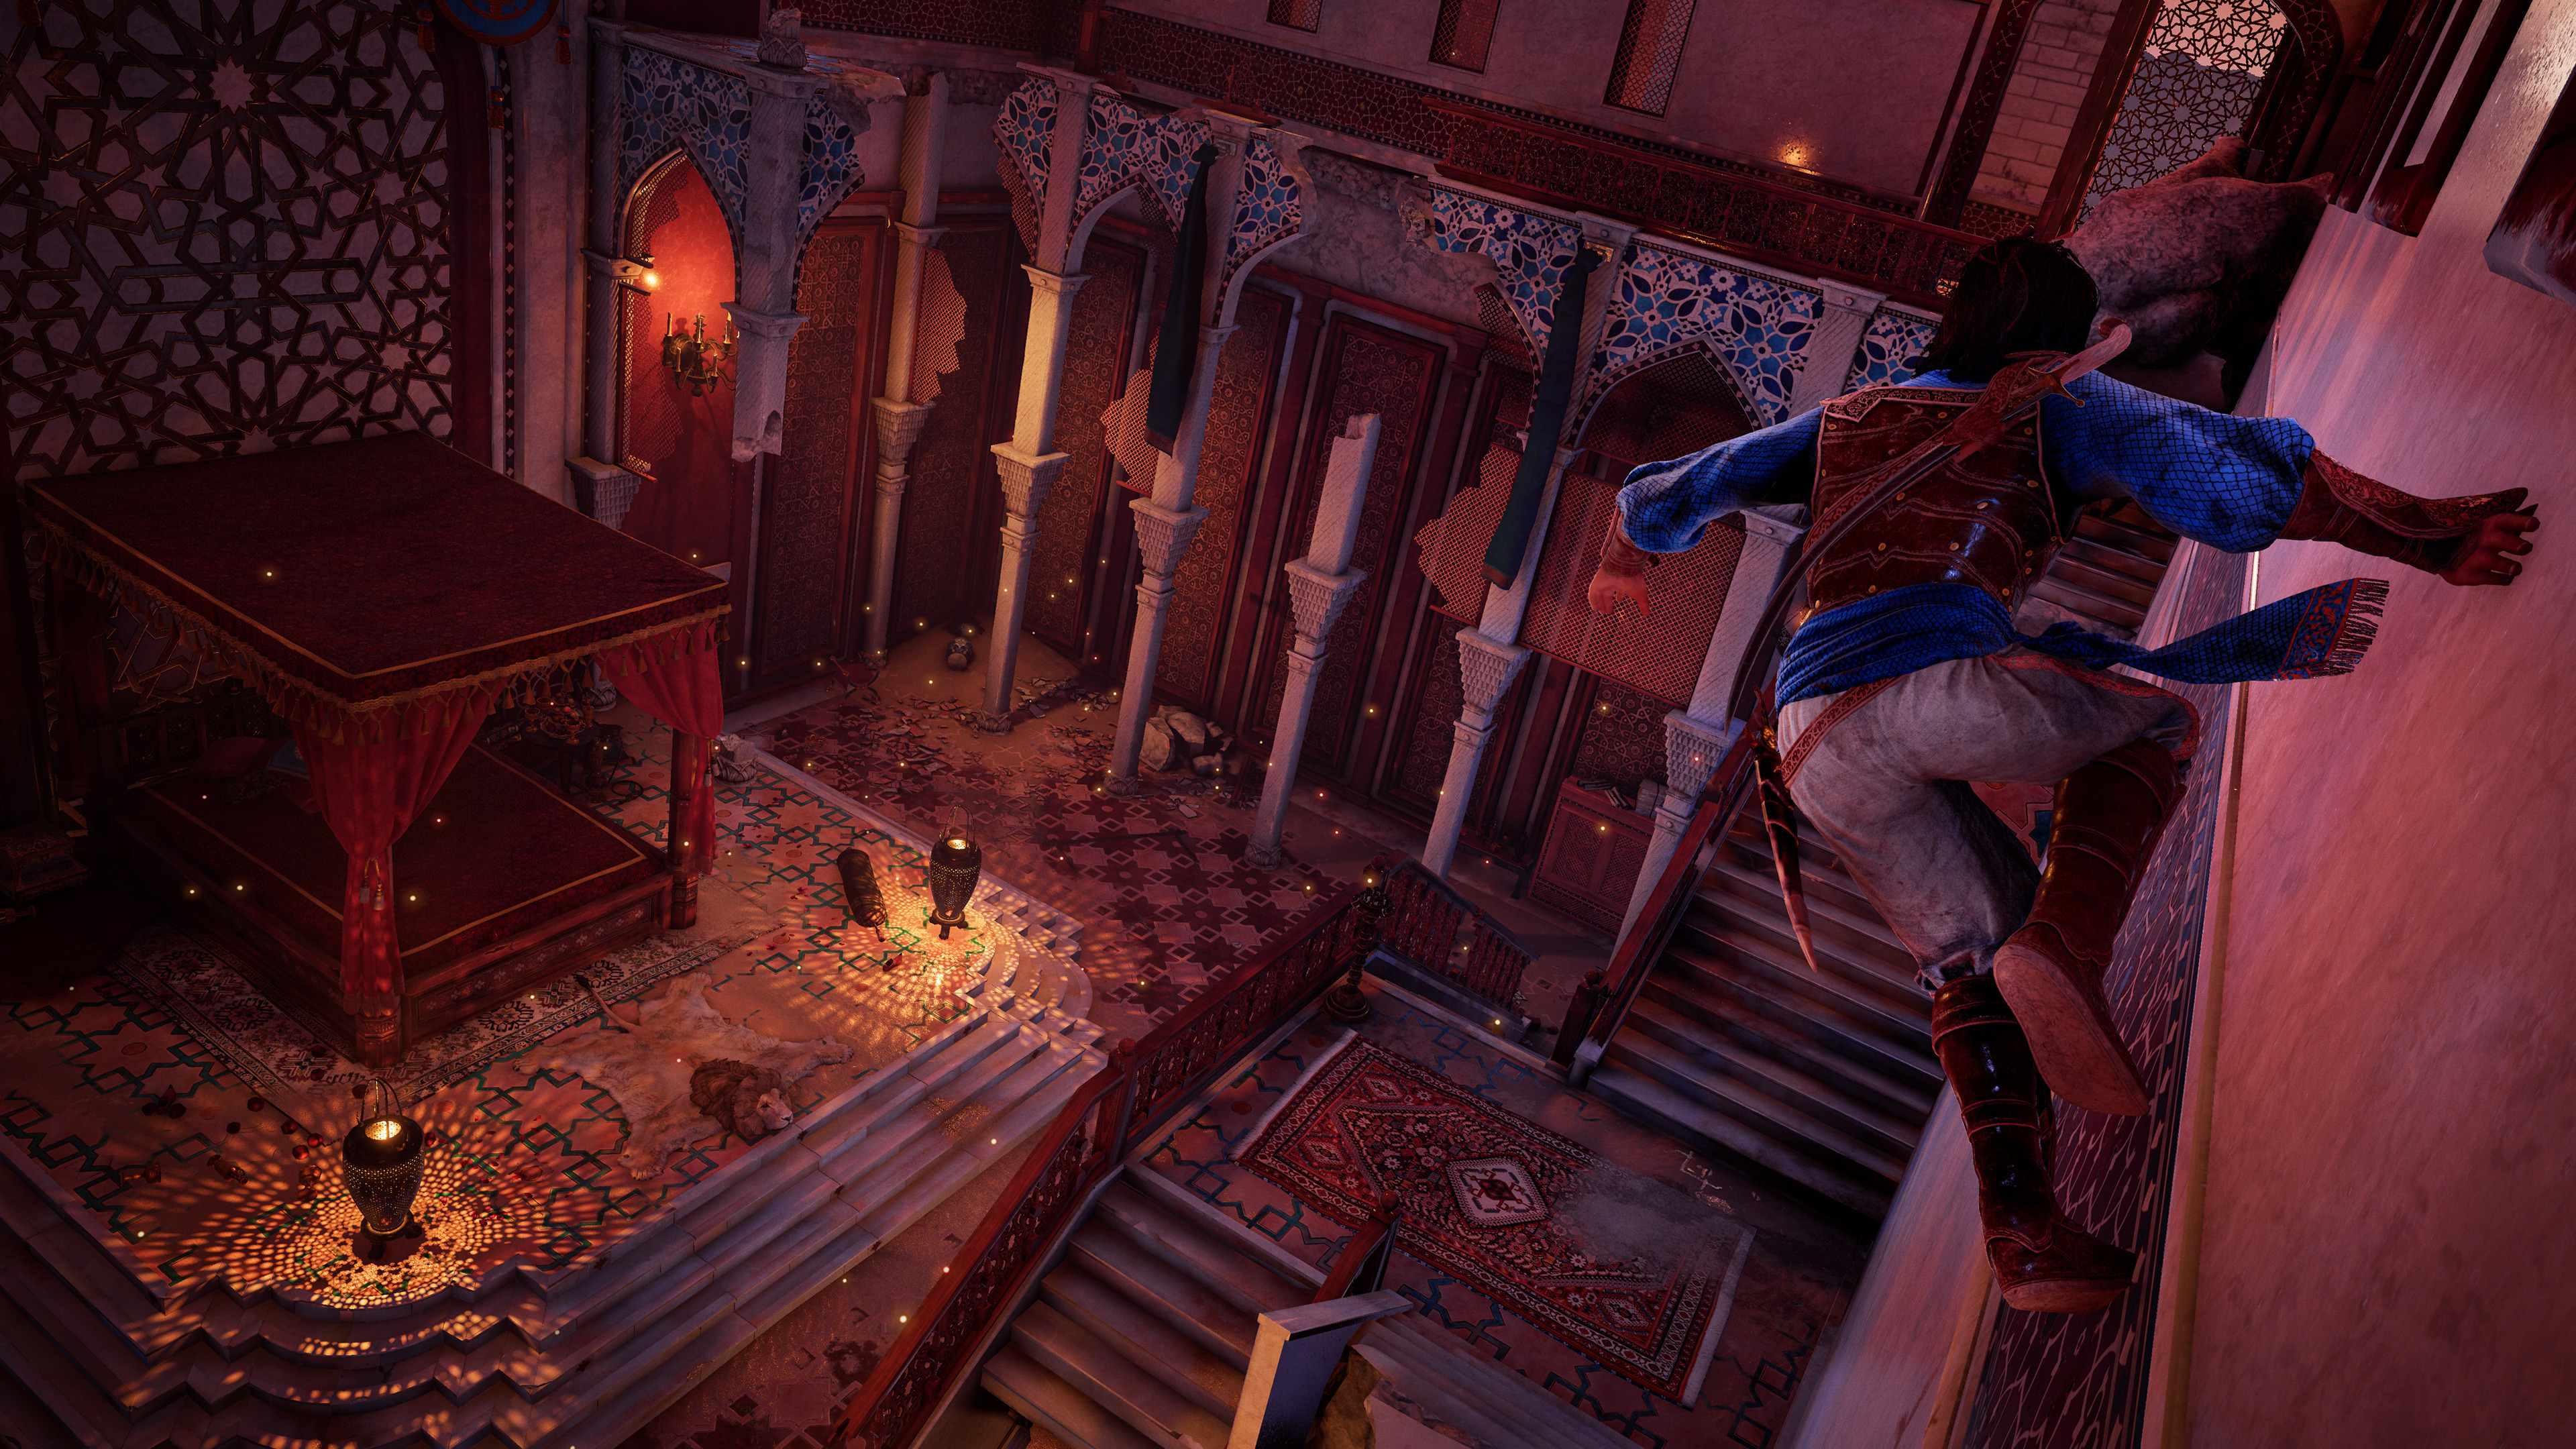 Prince Of Persia The Sands Of Time Remake, HD Games, 4k Wallpapers, Images, Backgrounds, Photos and Pictures